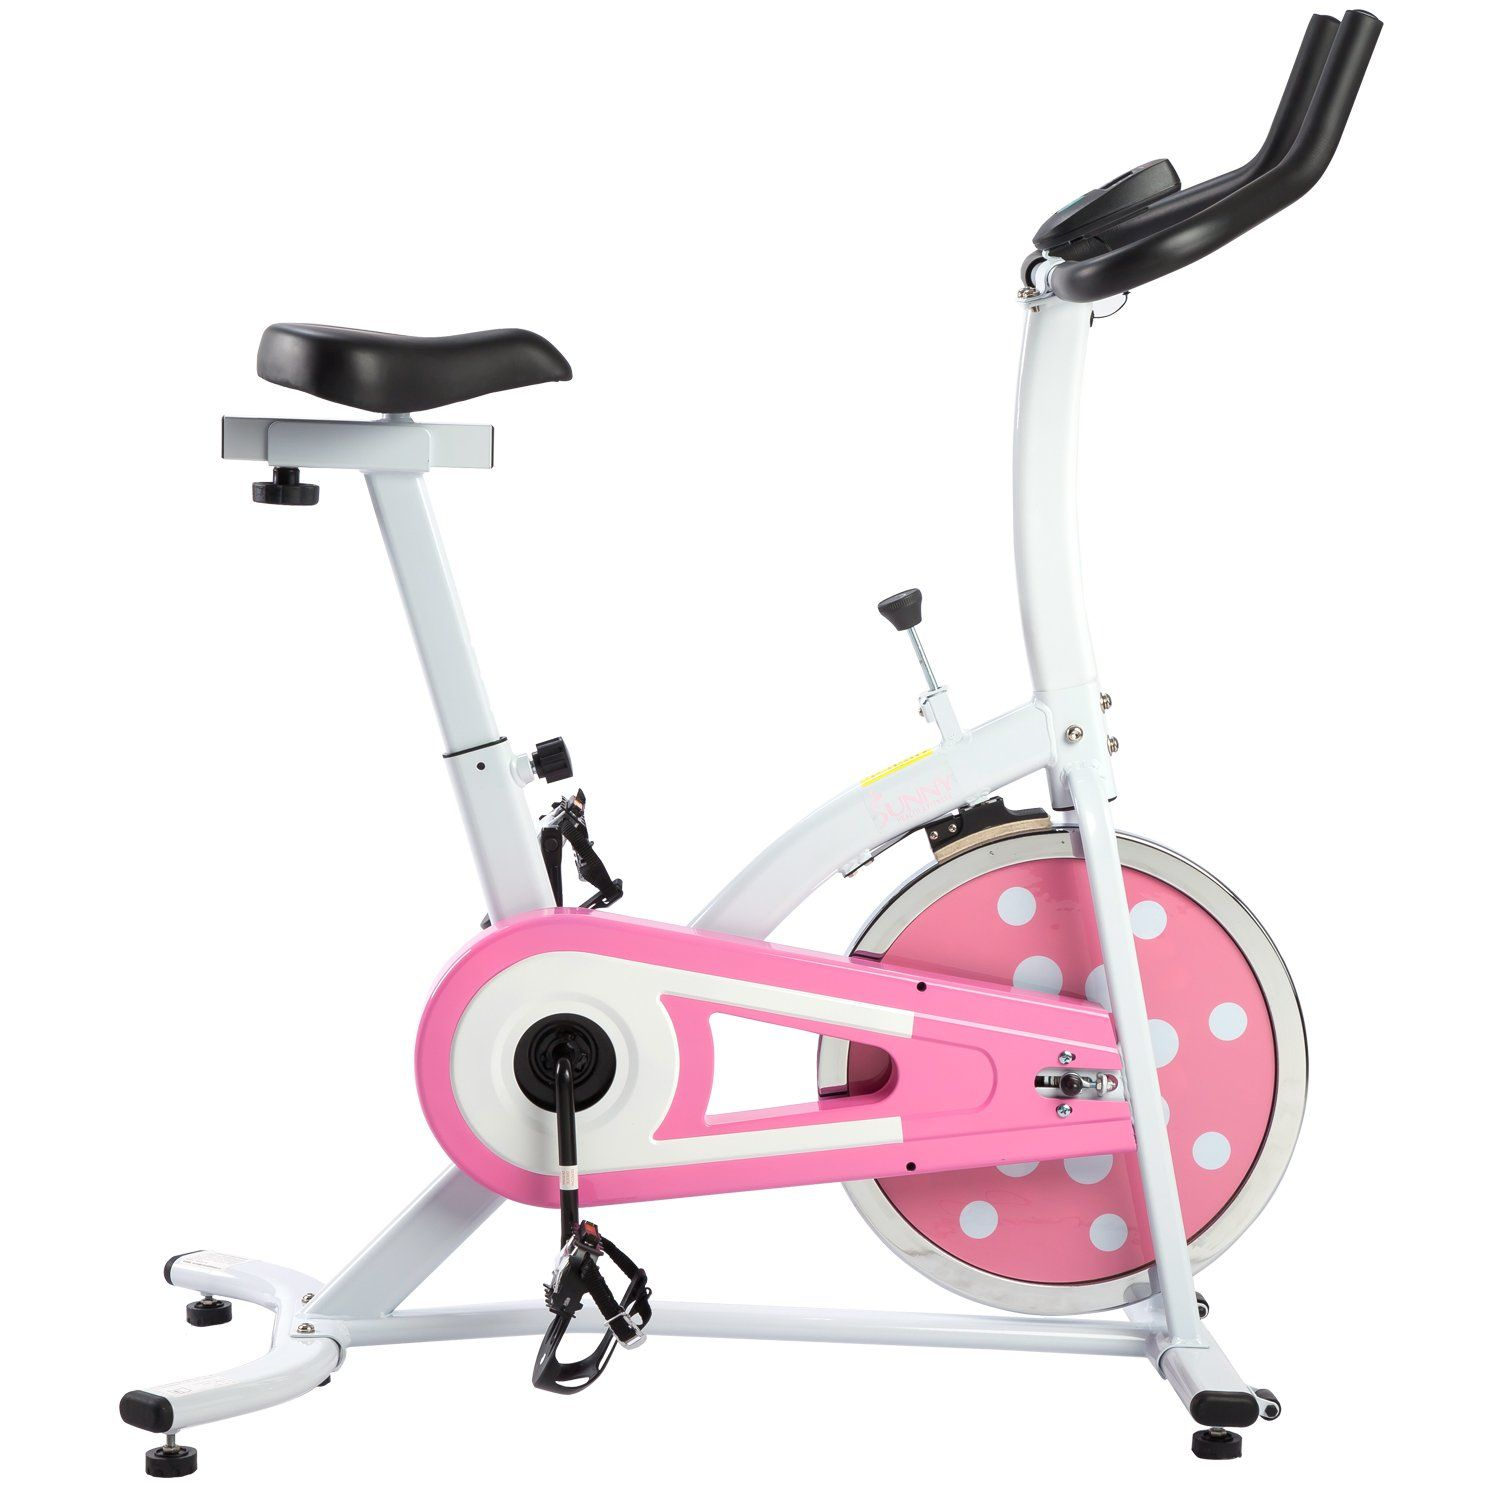 Sunny Health and Fitness Indoor Cycling Bike (Pink). Adjustable seat height. 22lb flywheel. Chain drive mechanism for smooth and quiet workouts. Heavy duty crank and steel frame. Adjustable resistance.